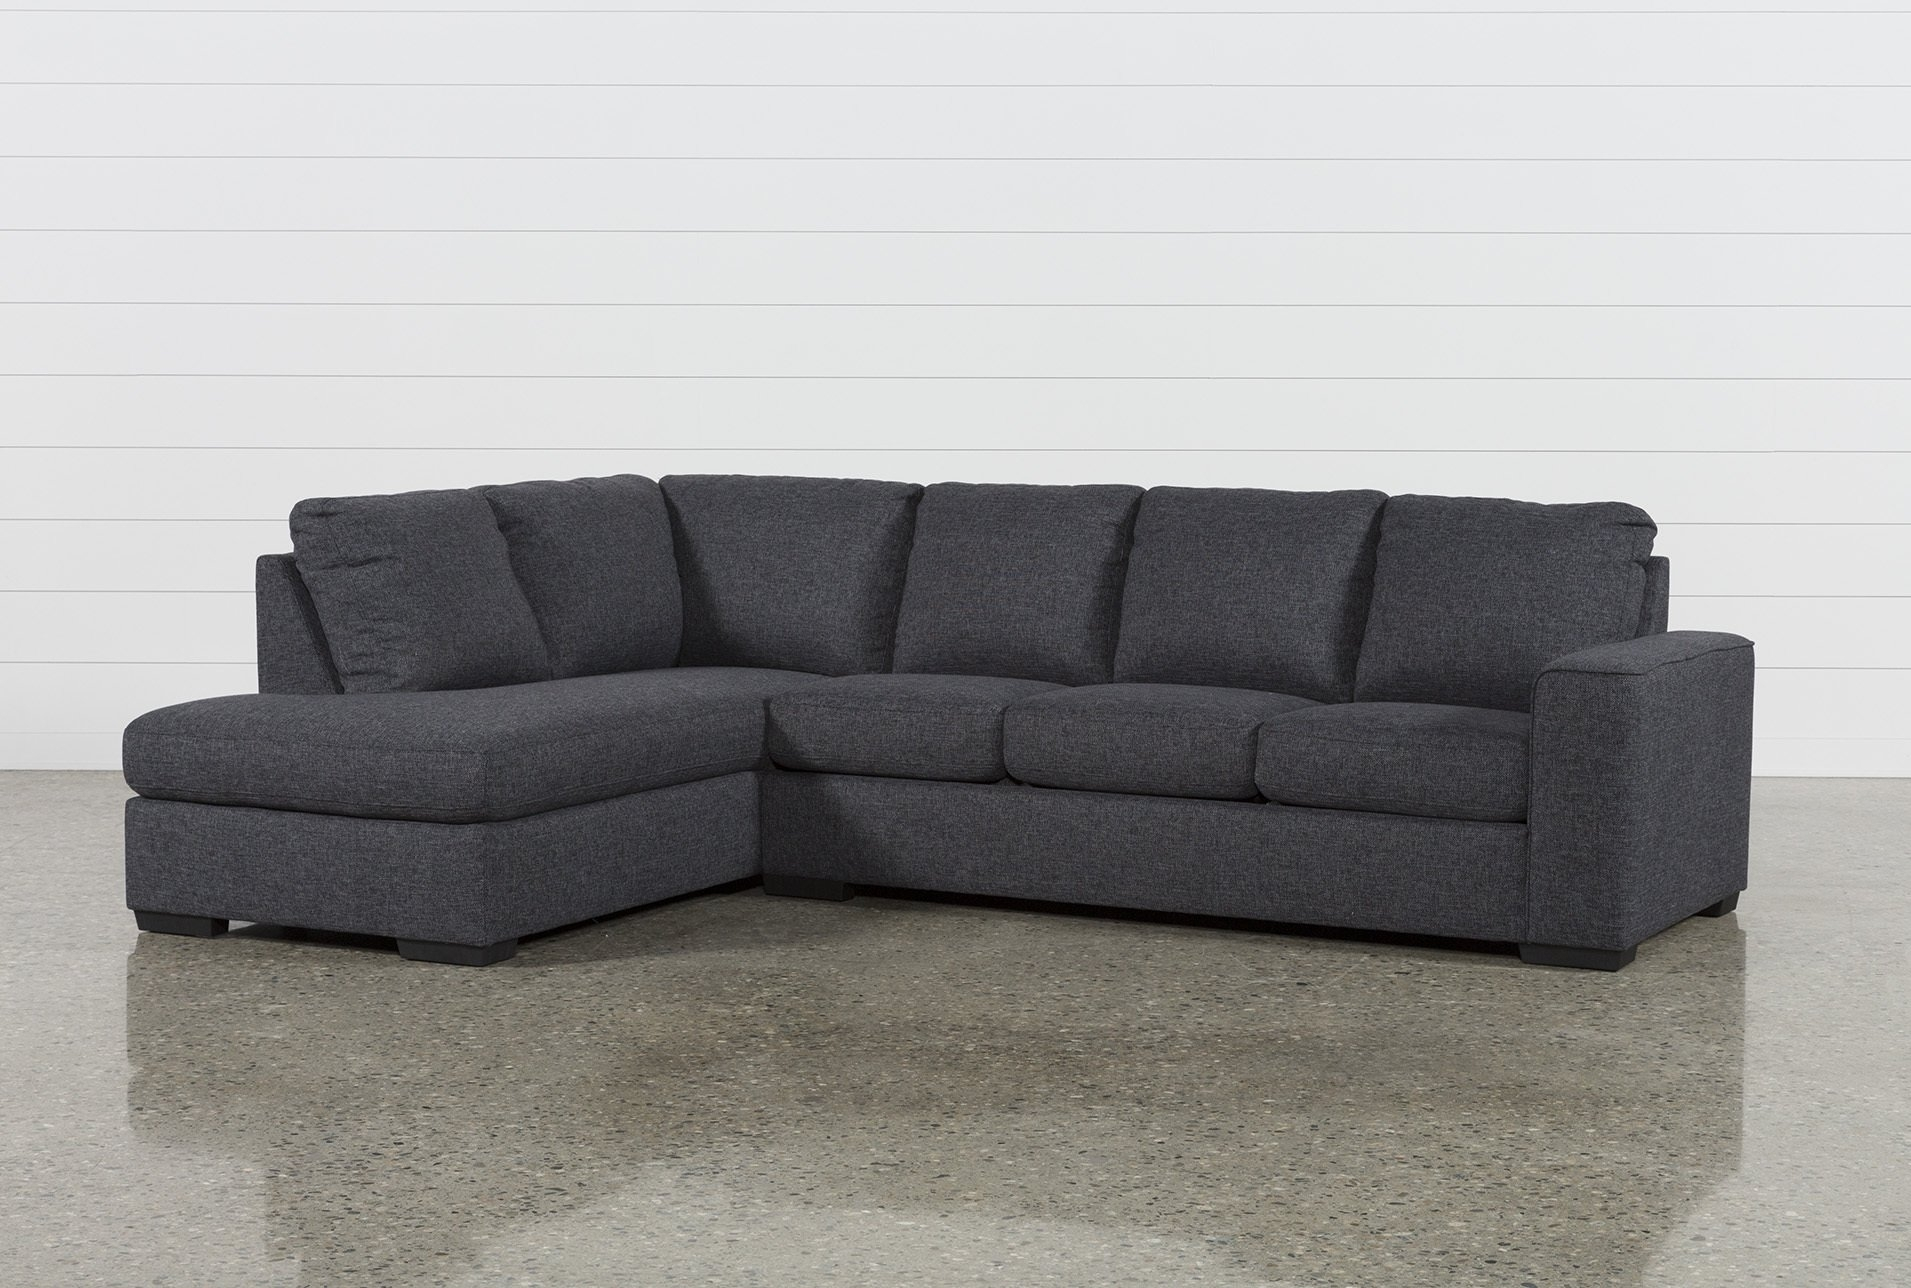 Lucy Dark Grey 2 Piece Sectional W/laf Chaise | Dark Grey And Products Regarding Aspen 2 Piece Sleeper Sectionals With Raf Chaise (View 2 of 25)